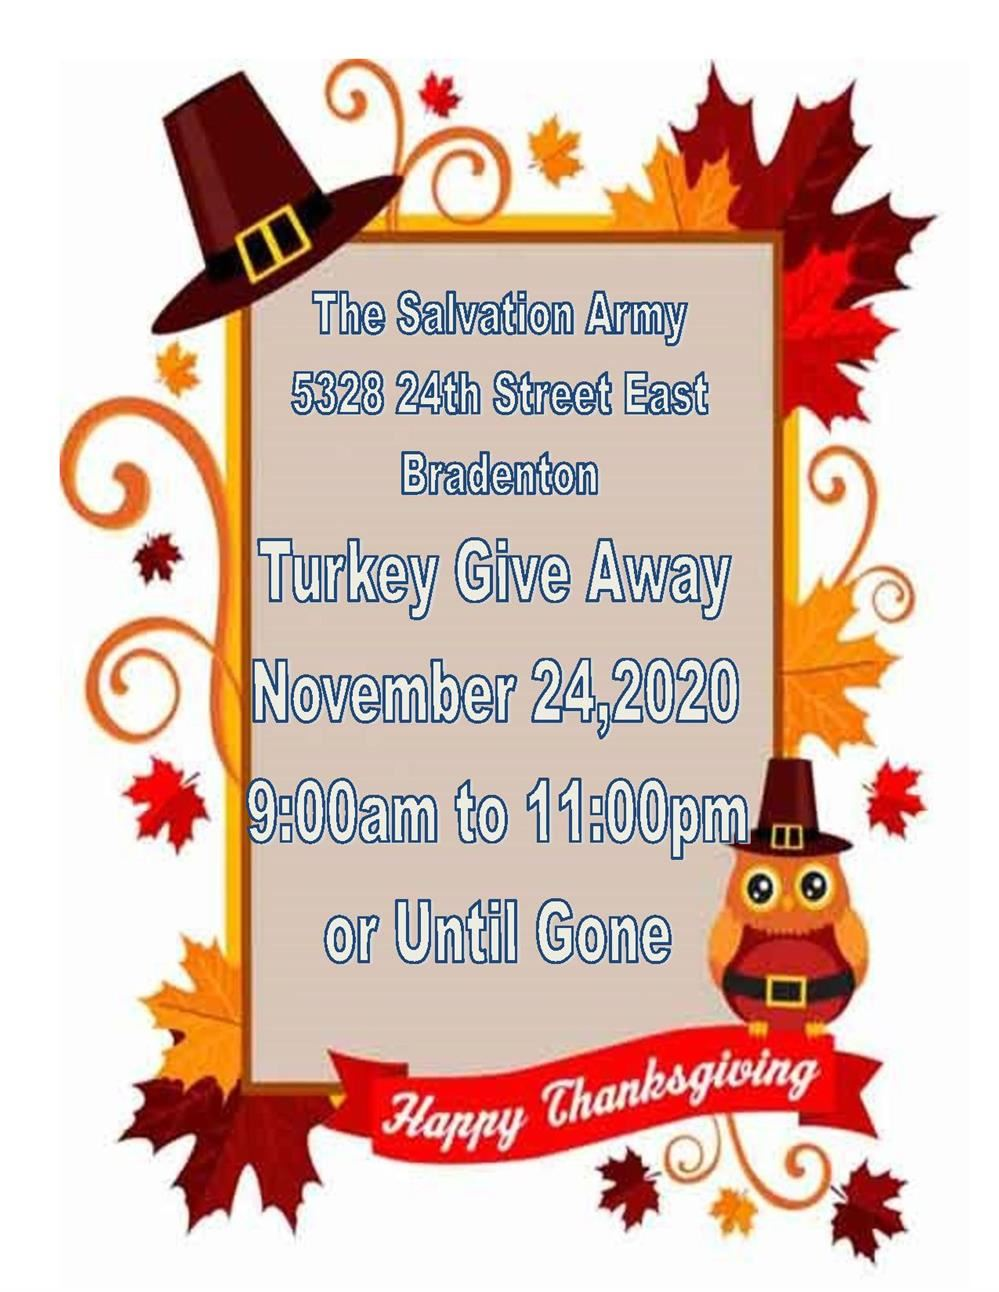 The Salvation Army Turkey Give Away 11/24 from 9:00-11:00